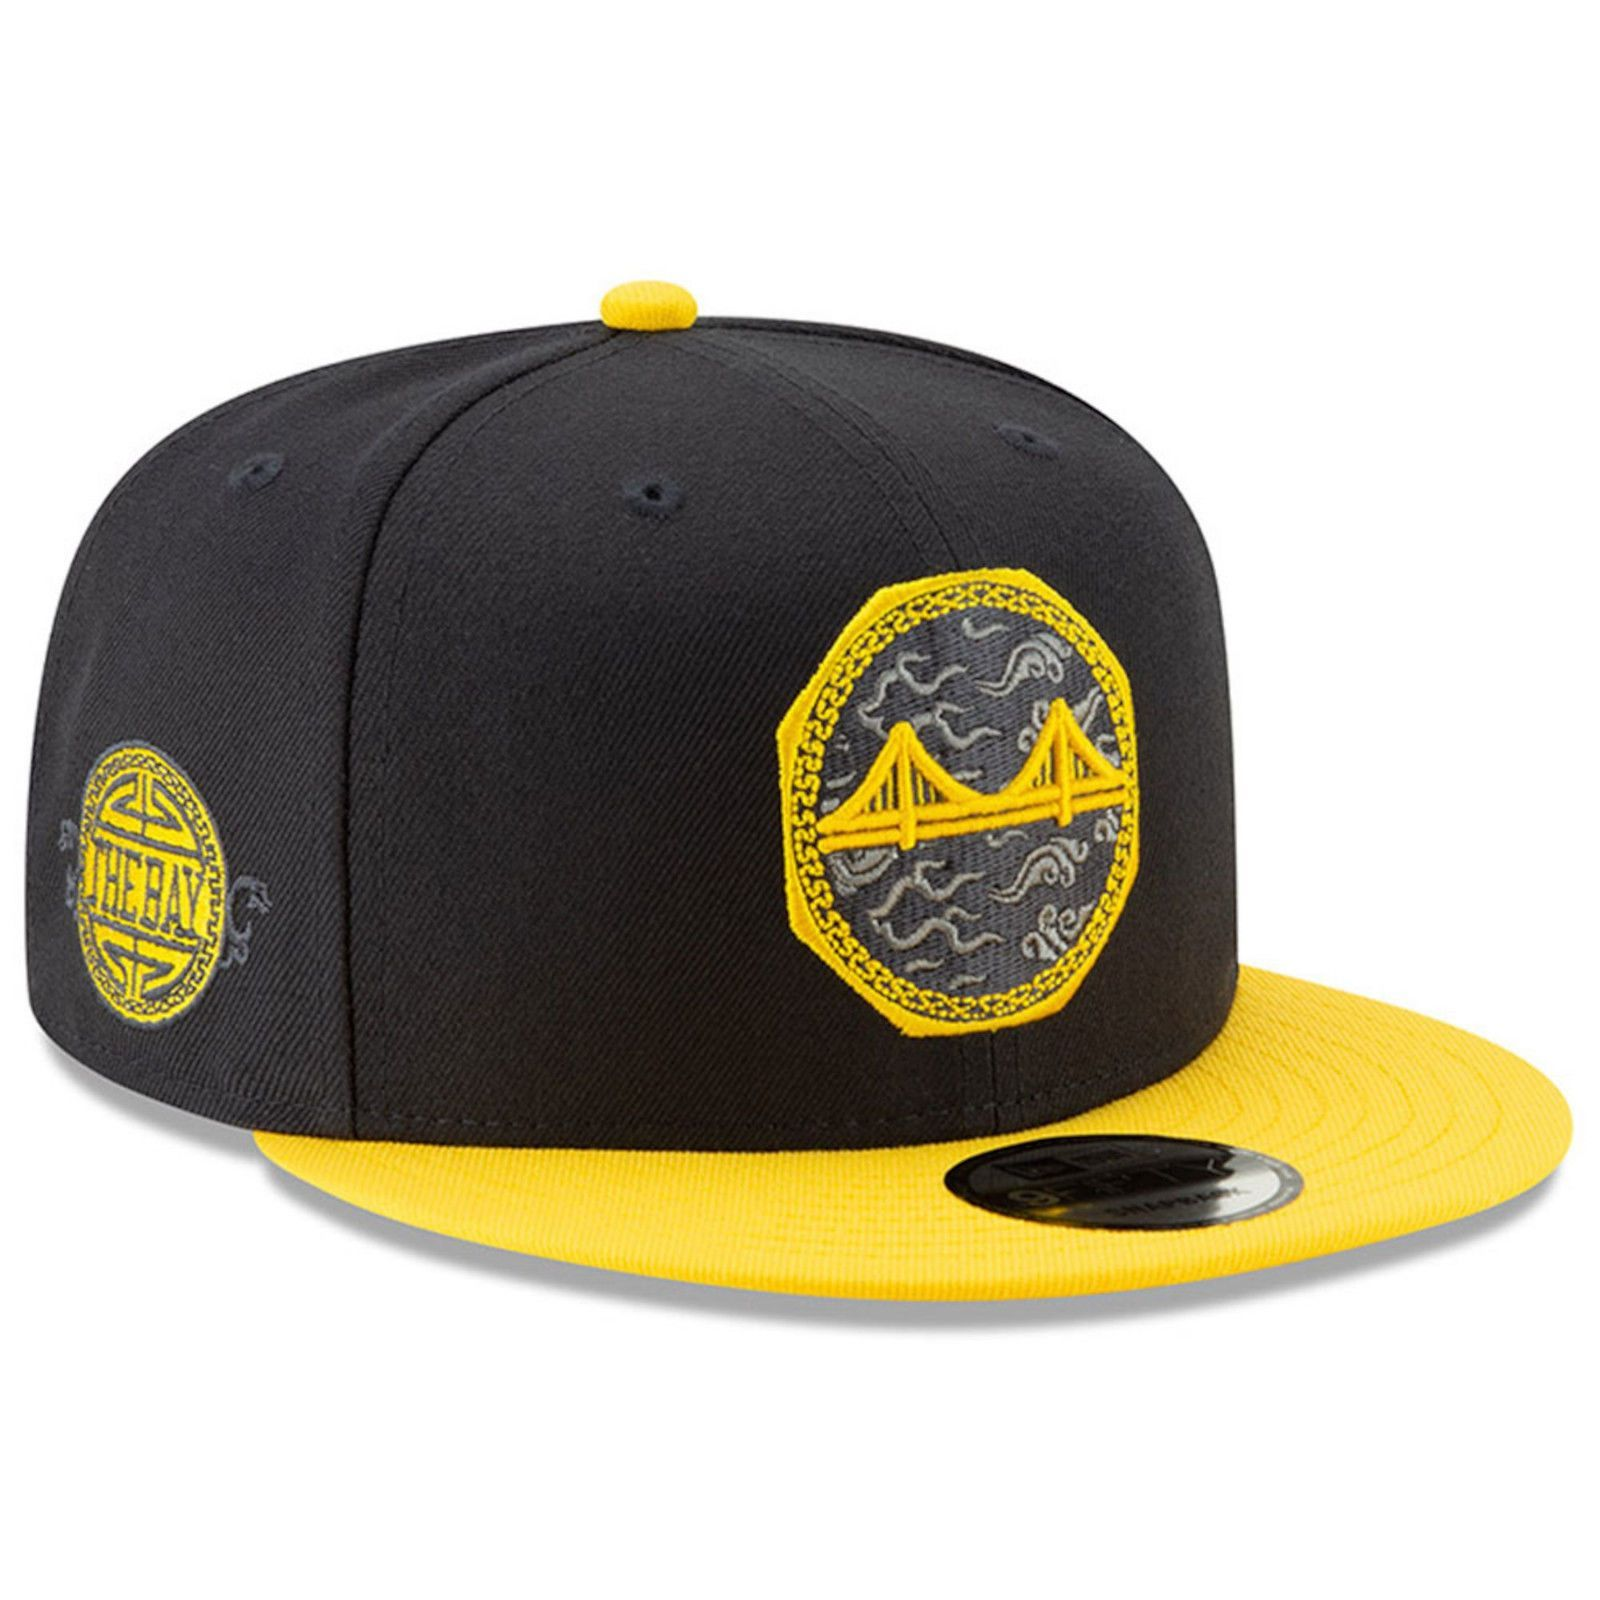 lowest price 5df41 d7c15 Golden State Warriors New Era 9FIFTY NBA City Edition Snapback Cap Hat The  Bay